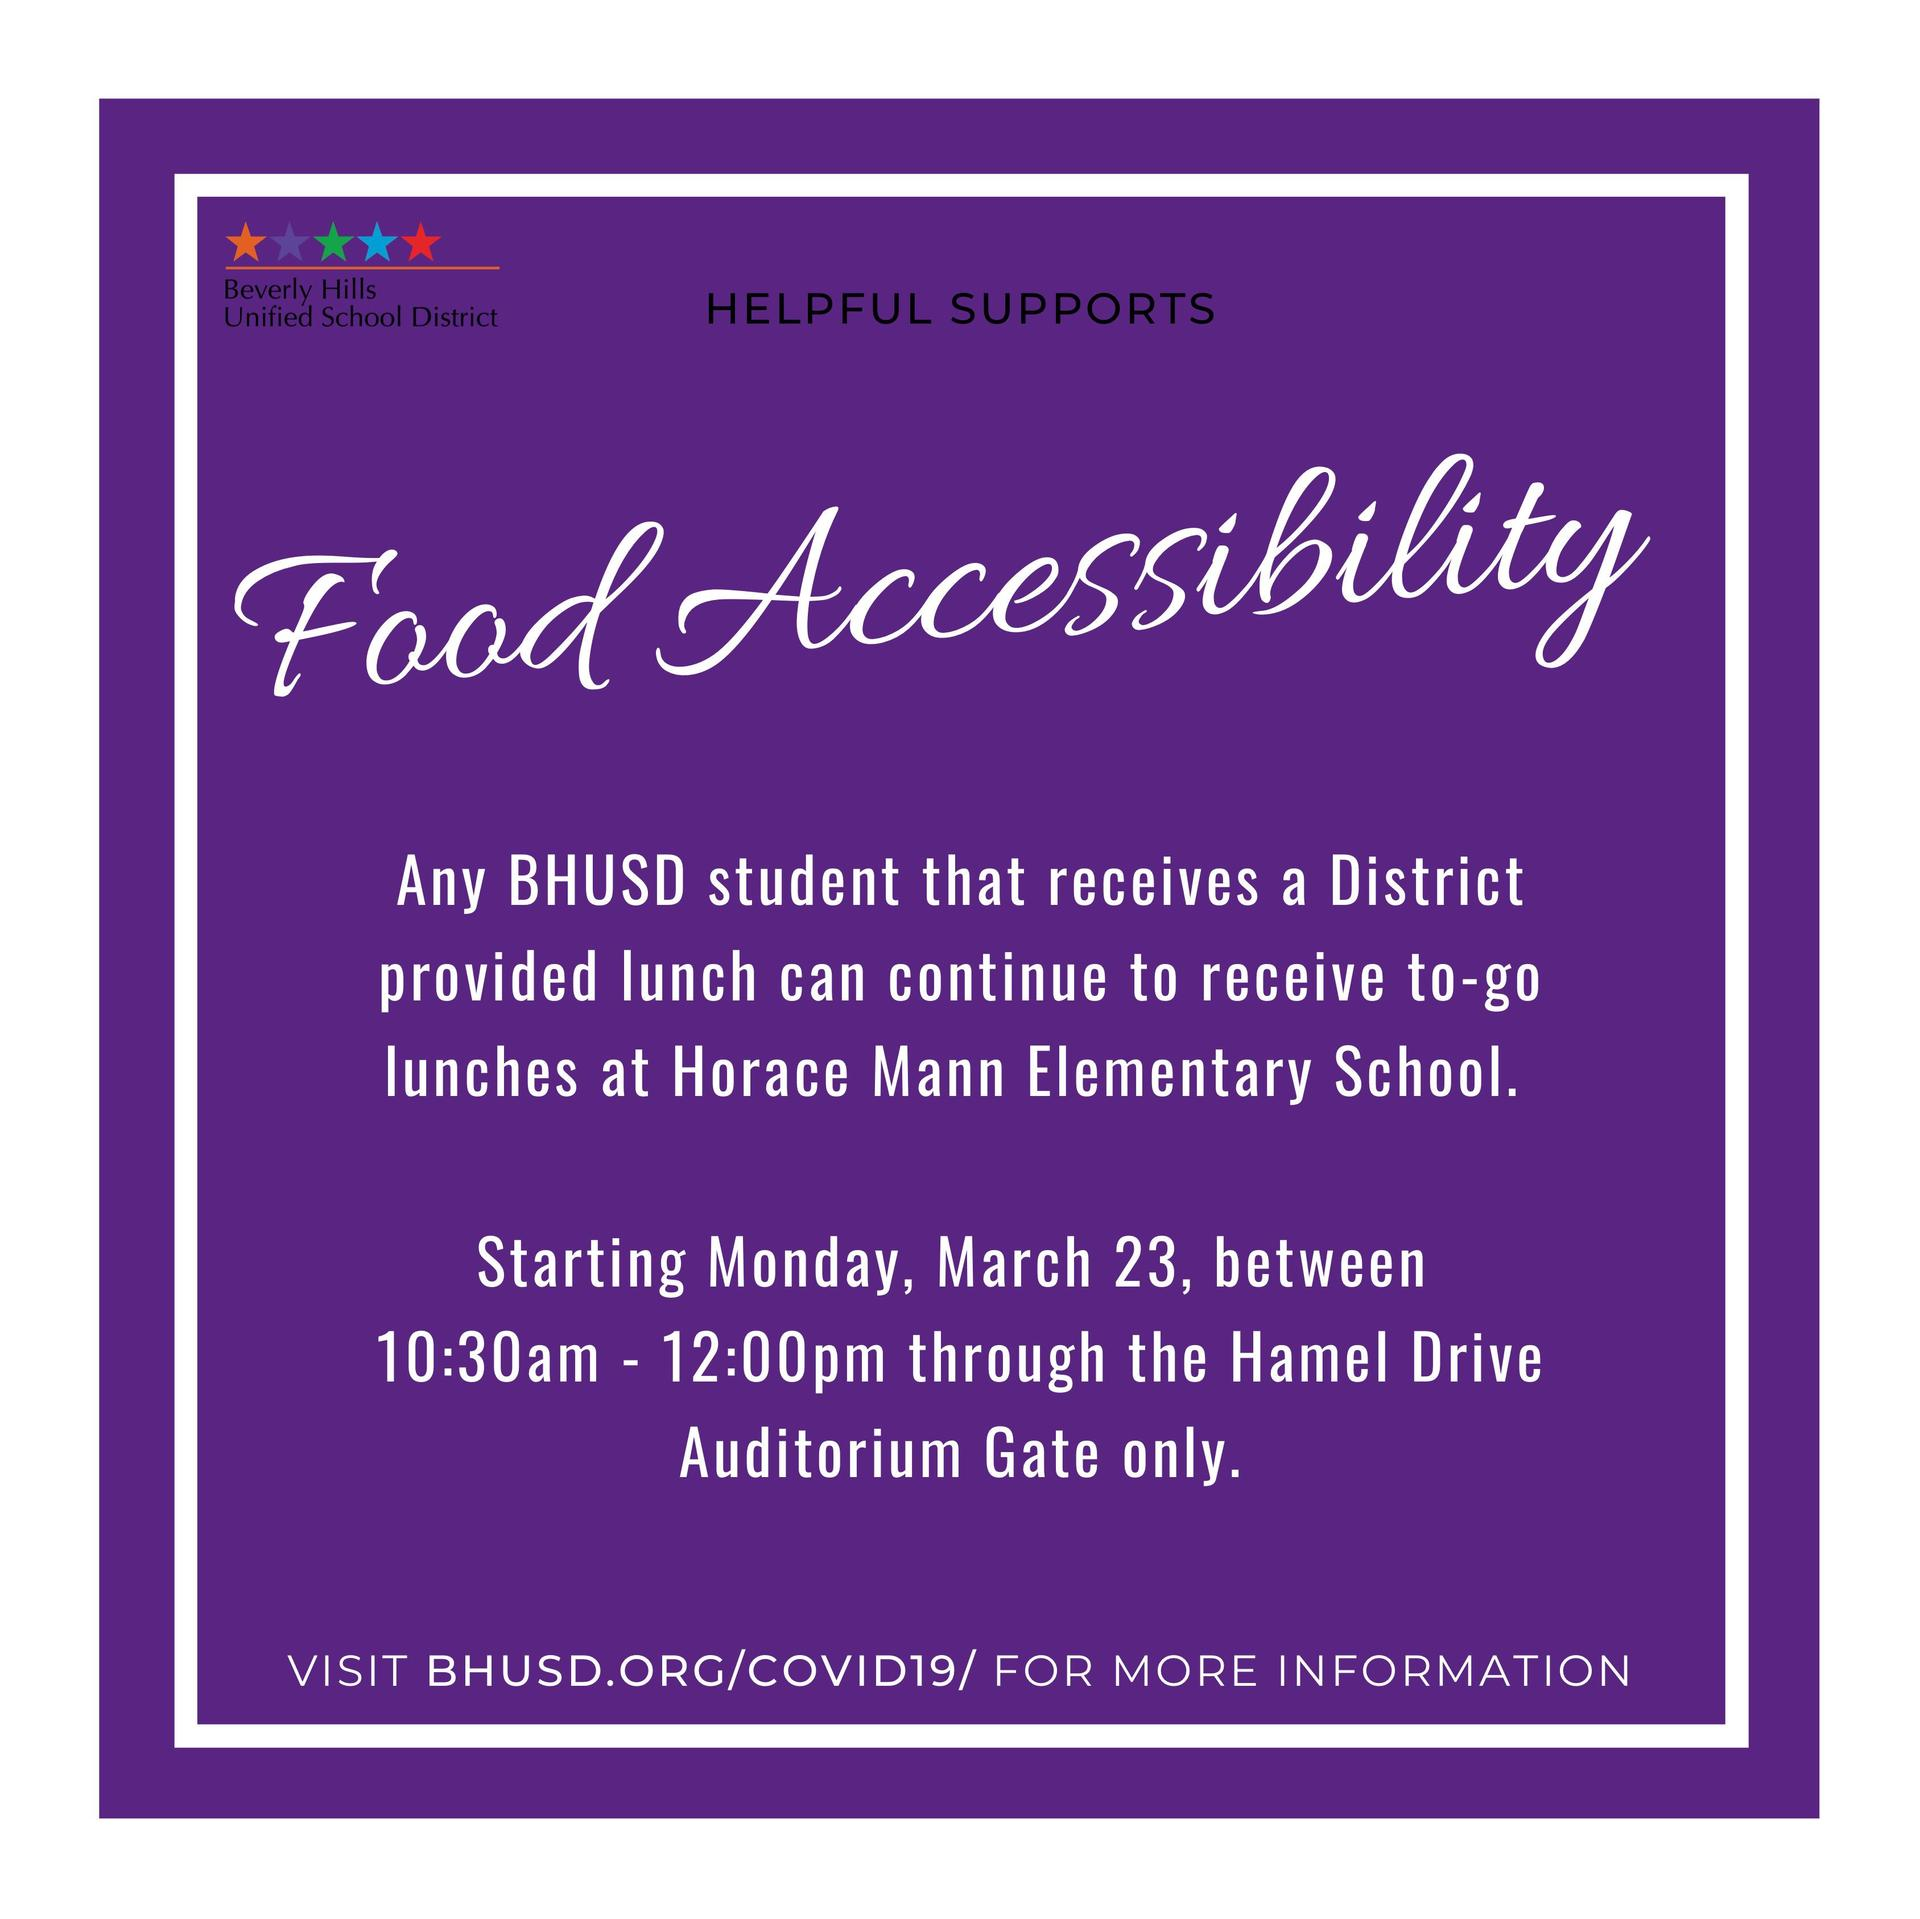 Food Accessibility